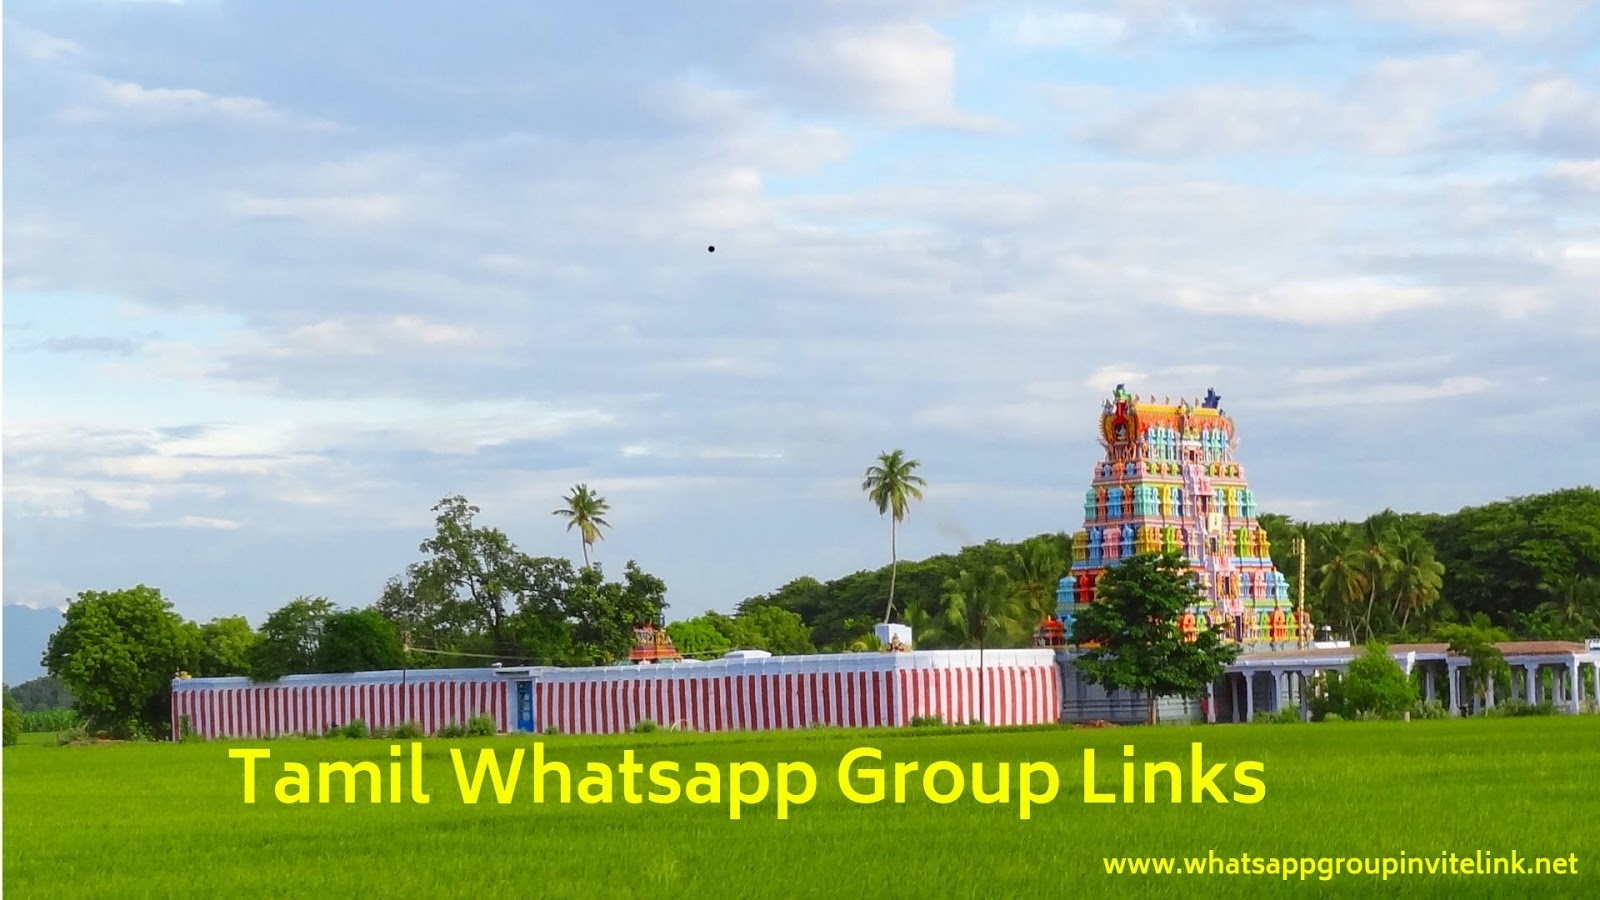 Whatsapp Group Invite Links: Tamil Whatsapp Group Links